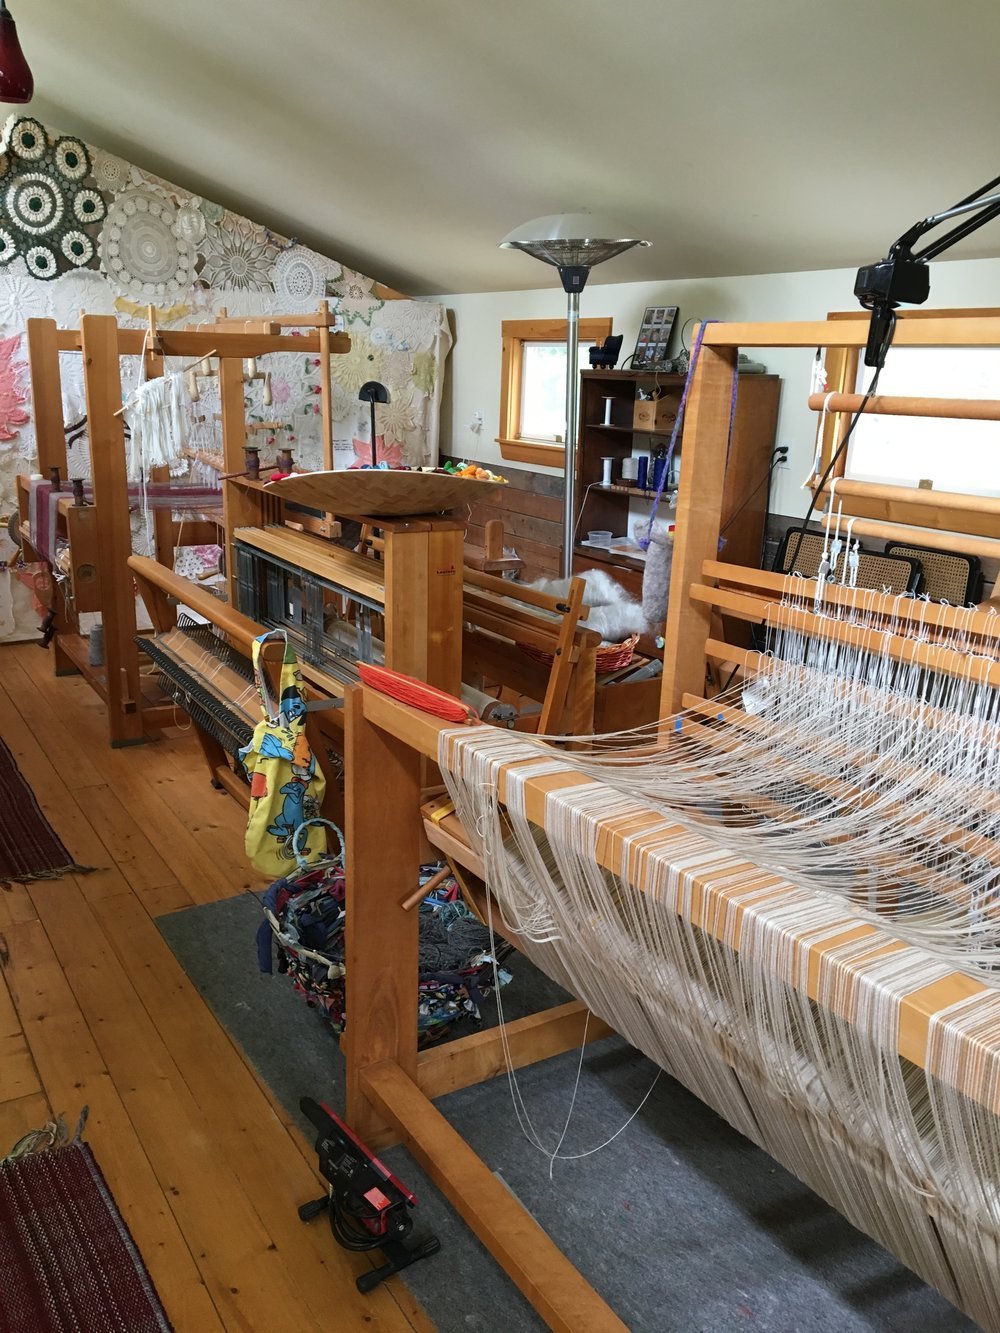 The loft for visiting artists and weaving instruction.